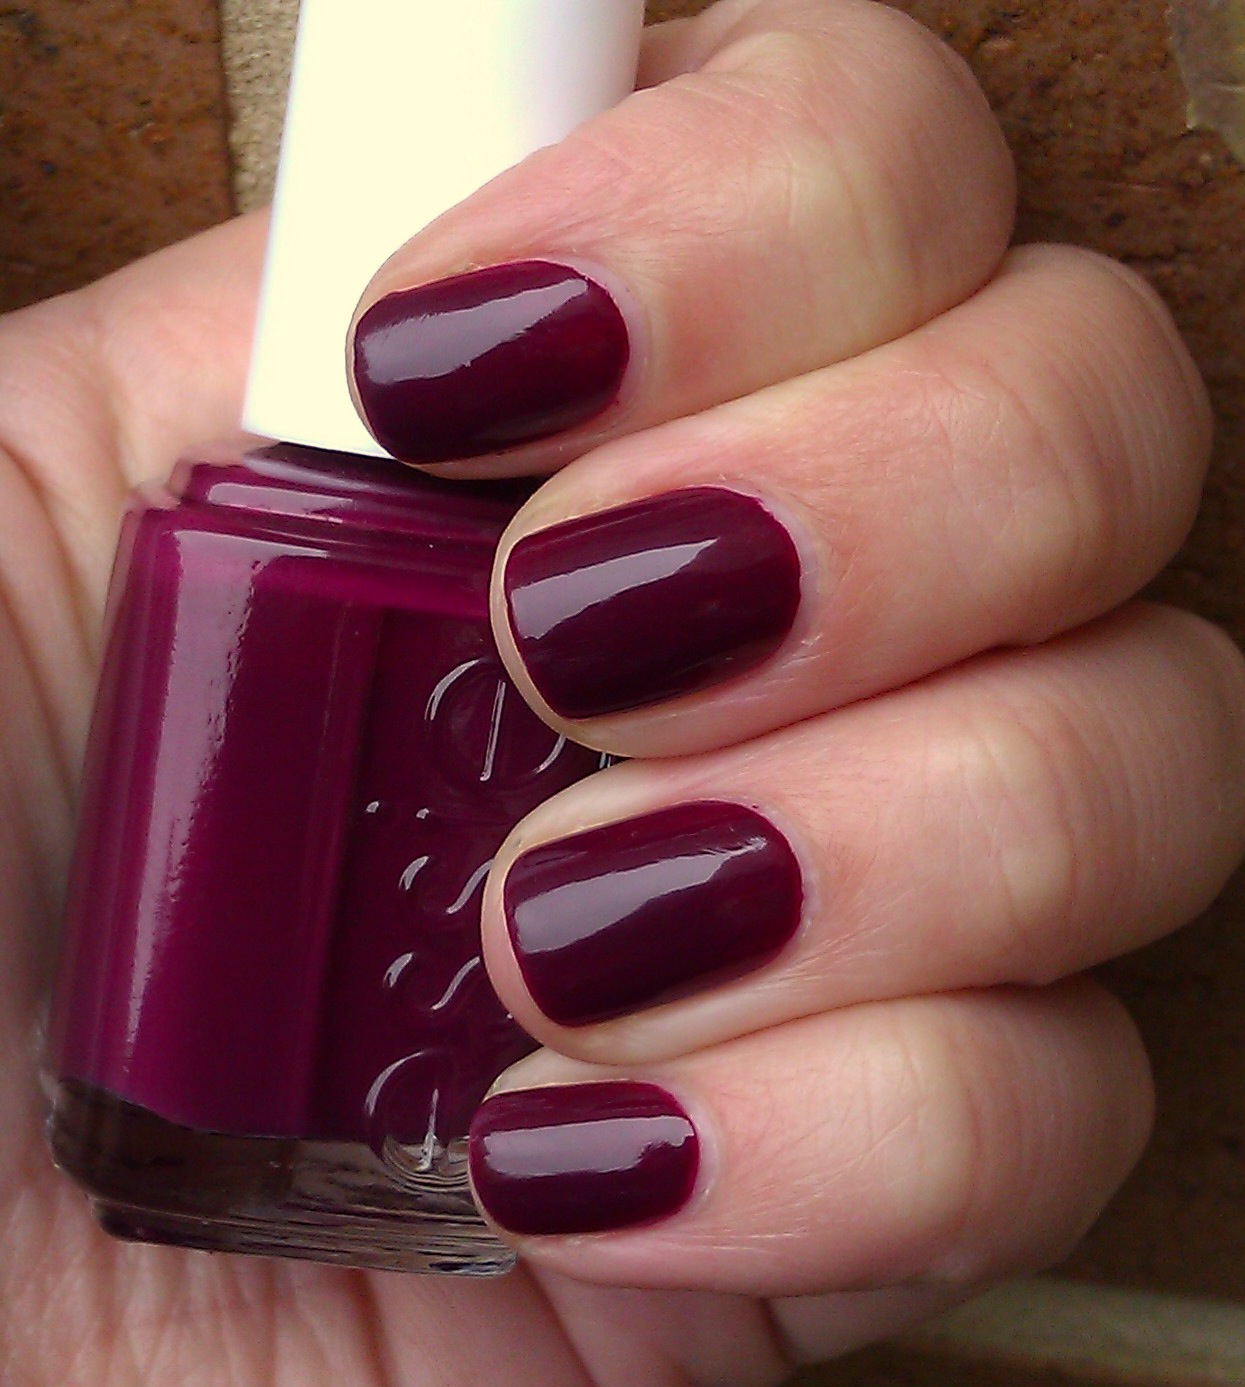 Polish or Perish: Blackcurrant Beauty - Essie Bahama Mama